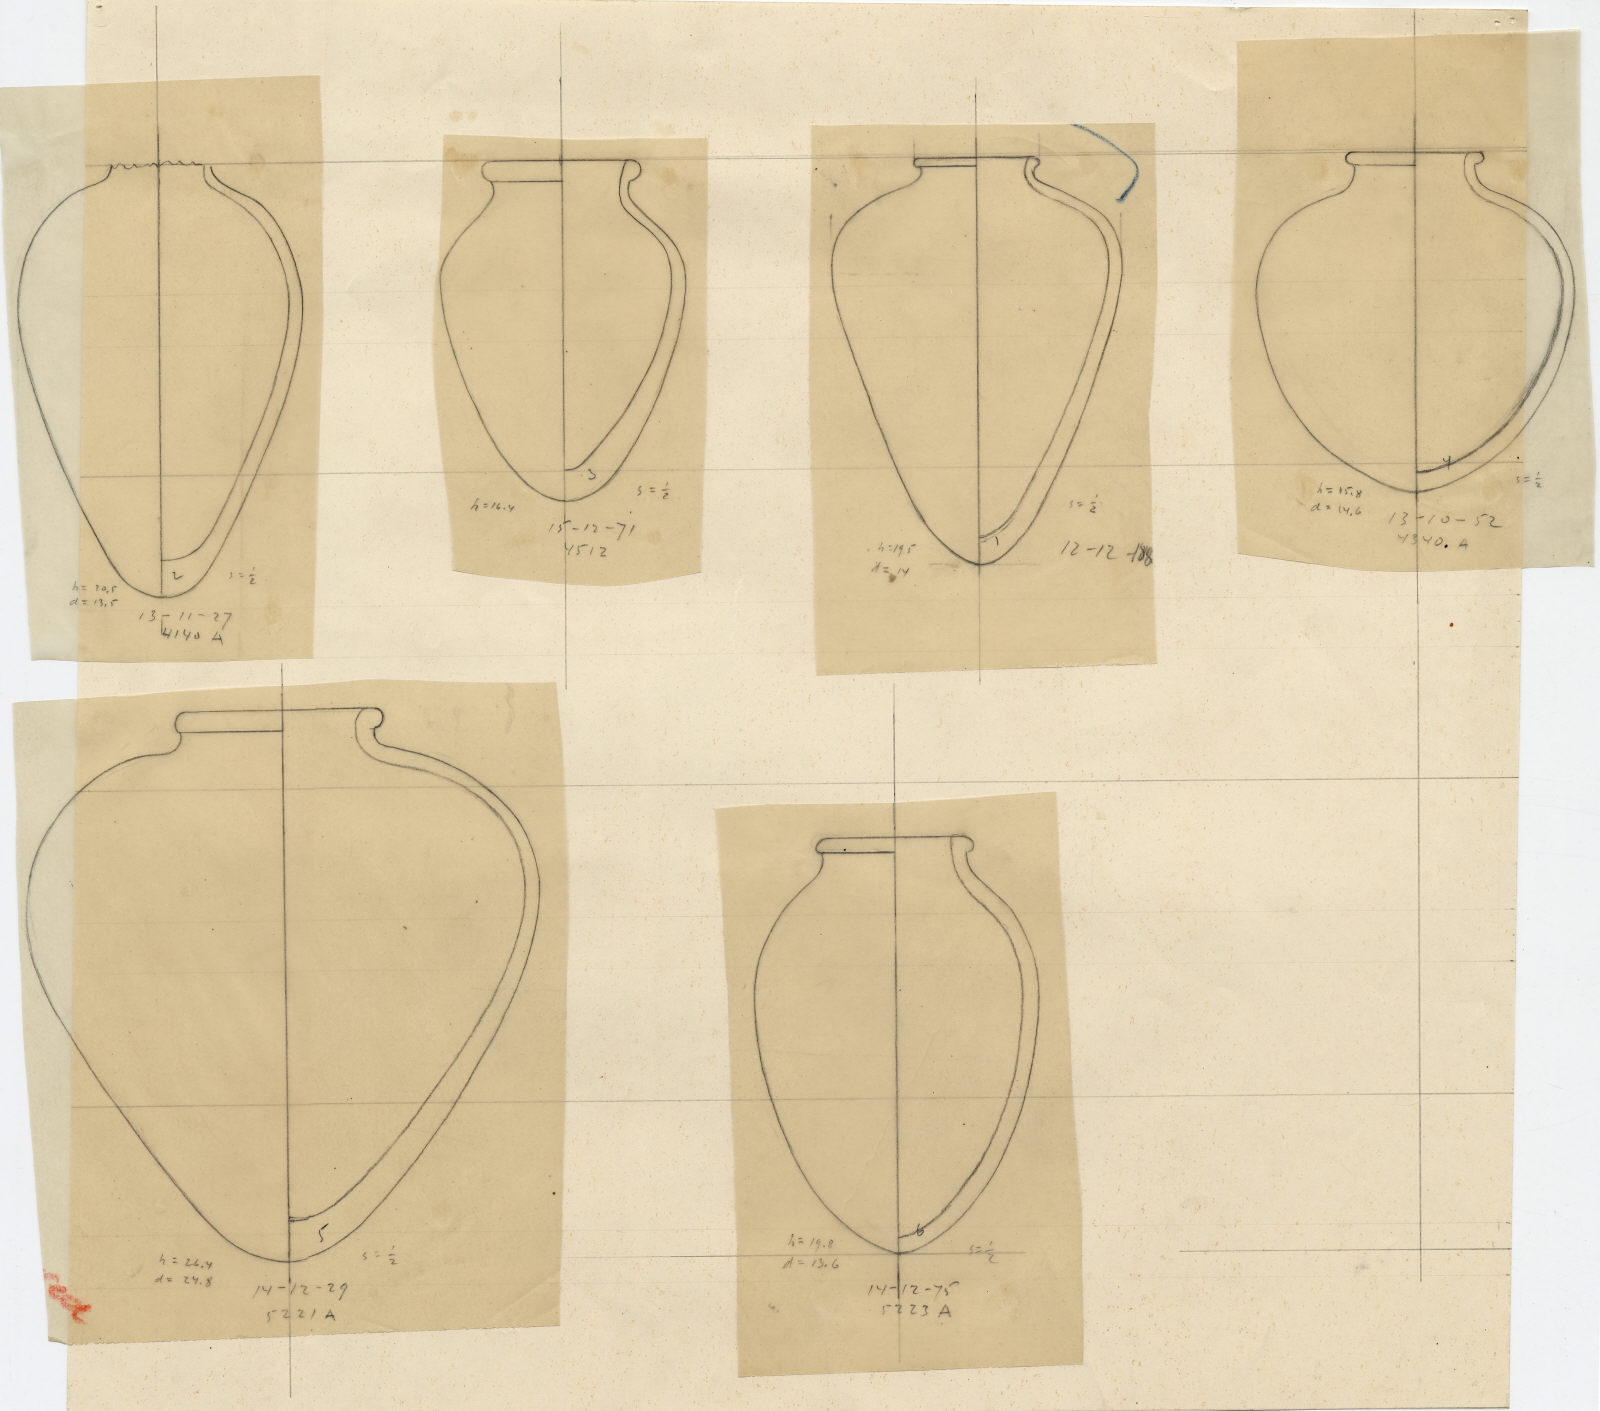 Drawings: Pottery jars from G 2381, G 4140, G 4340, G 4512, G 5221, G 5223